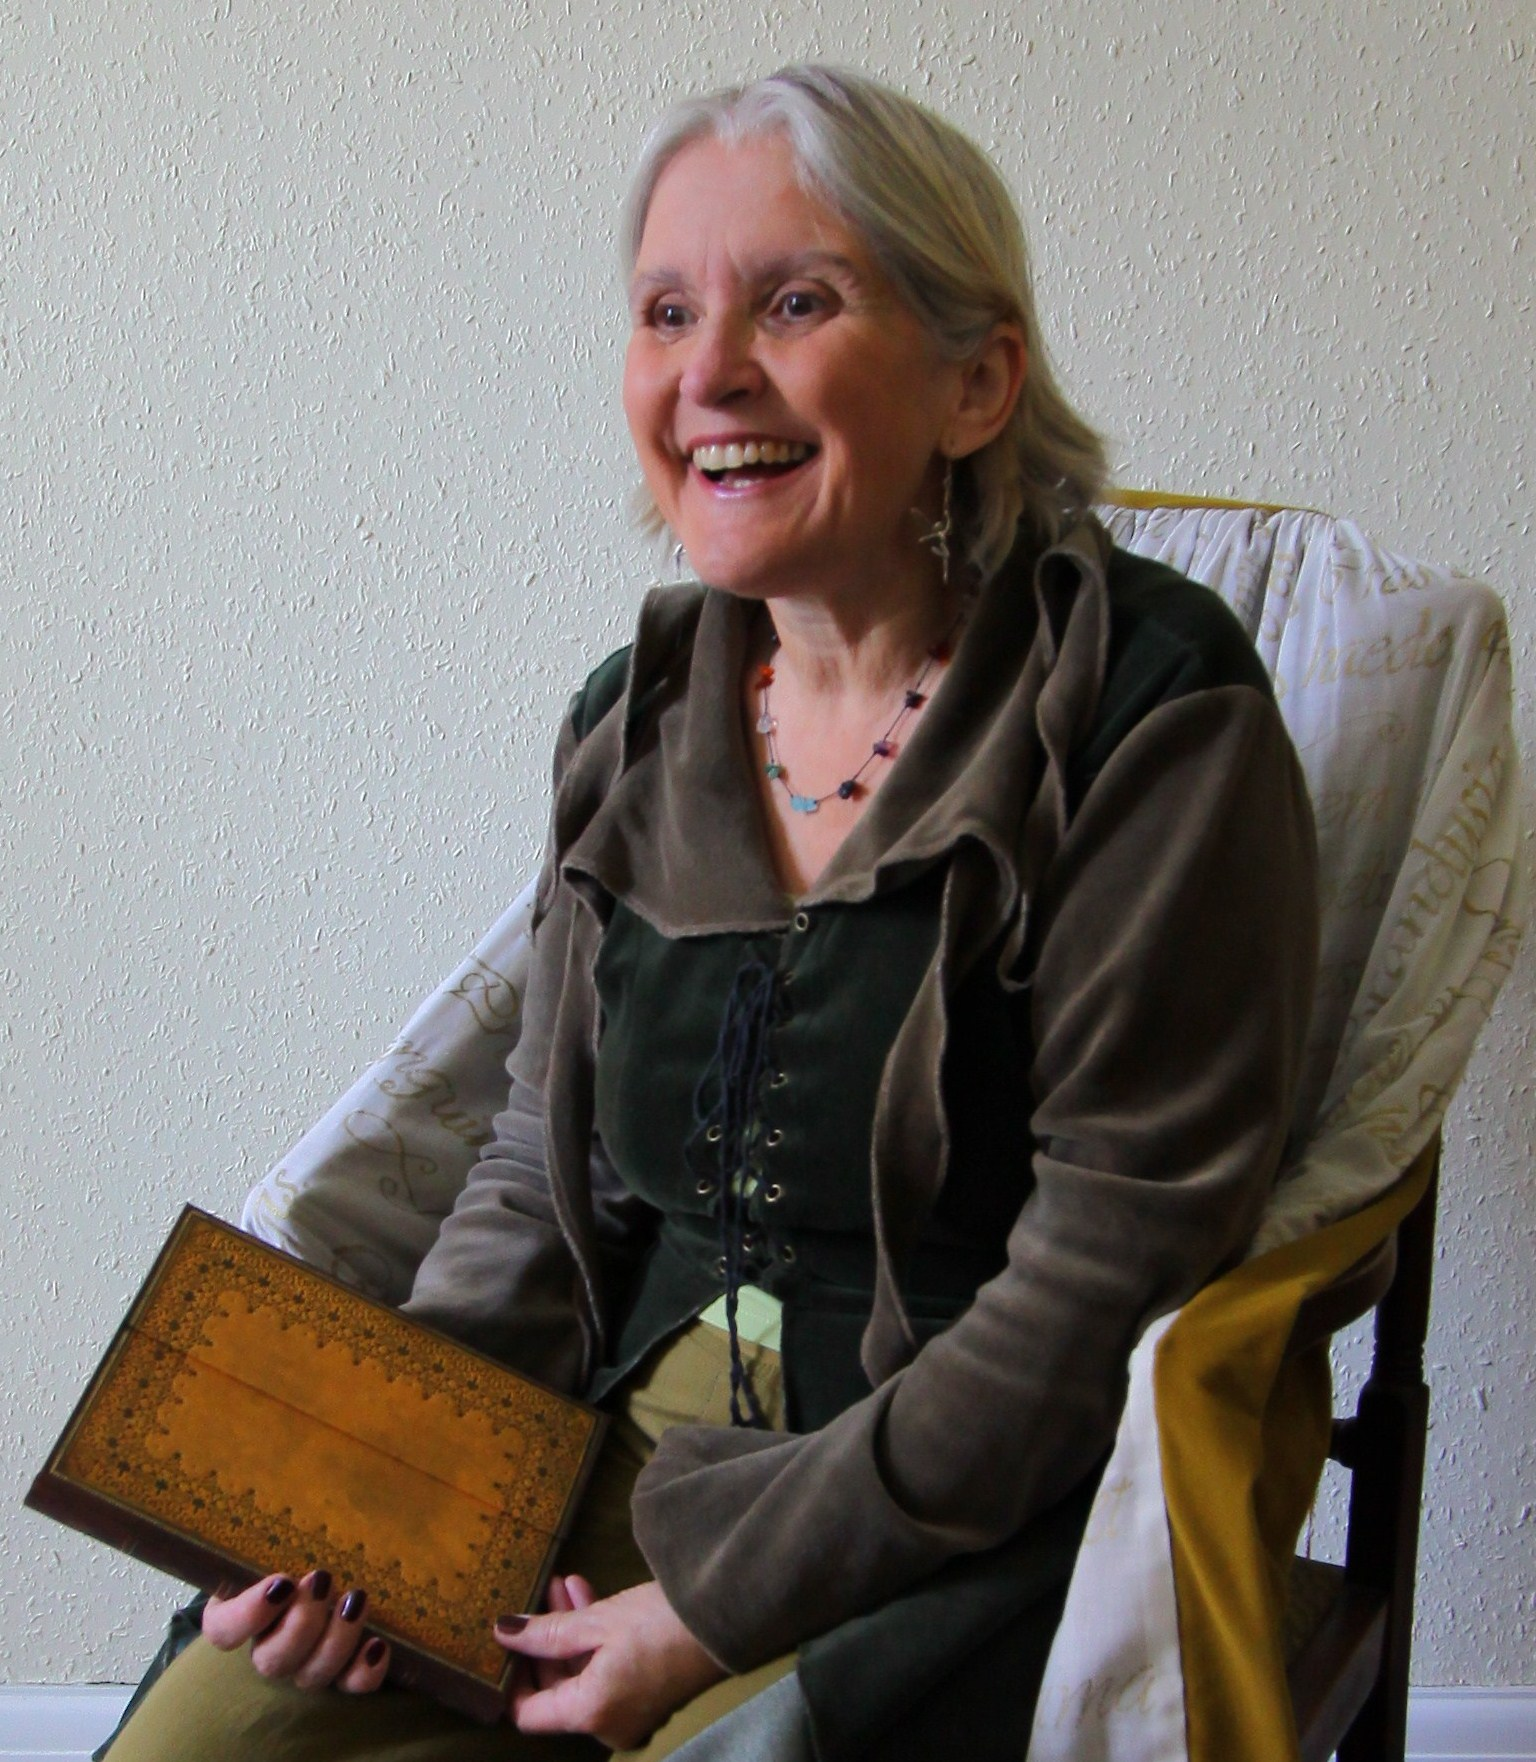 Picture of the author with a huge smile, almost a laugh of delight, an sitting on a chair with a large book in her lap.